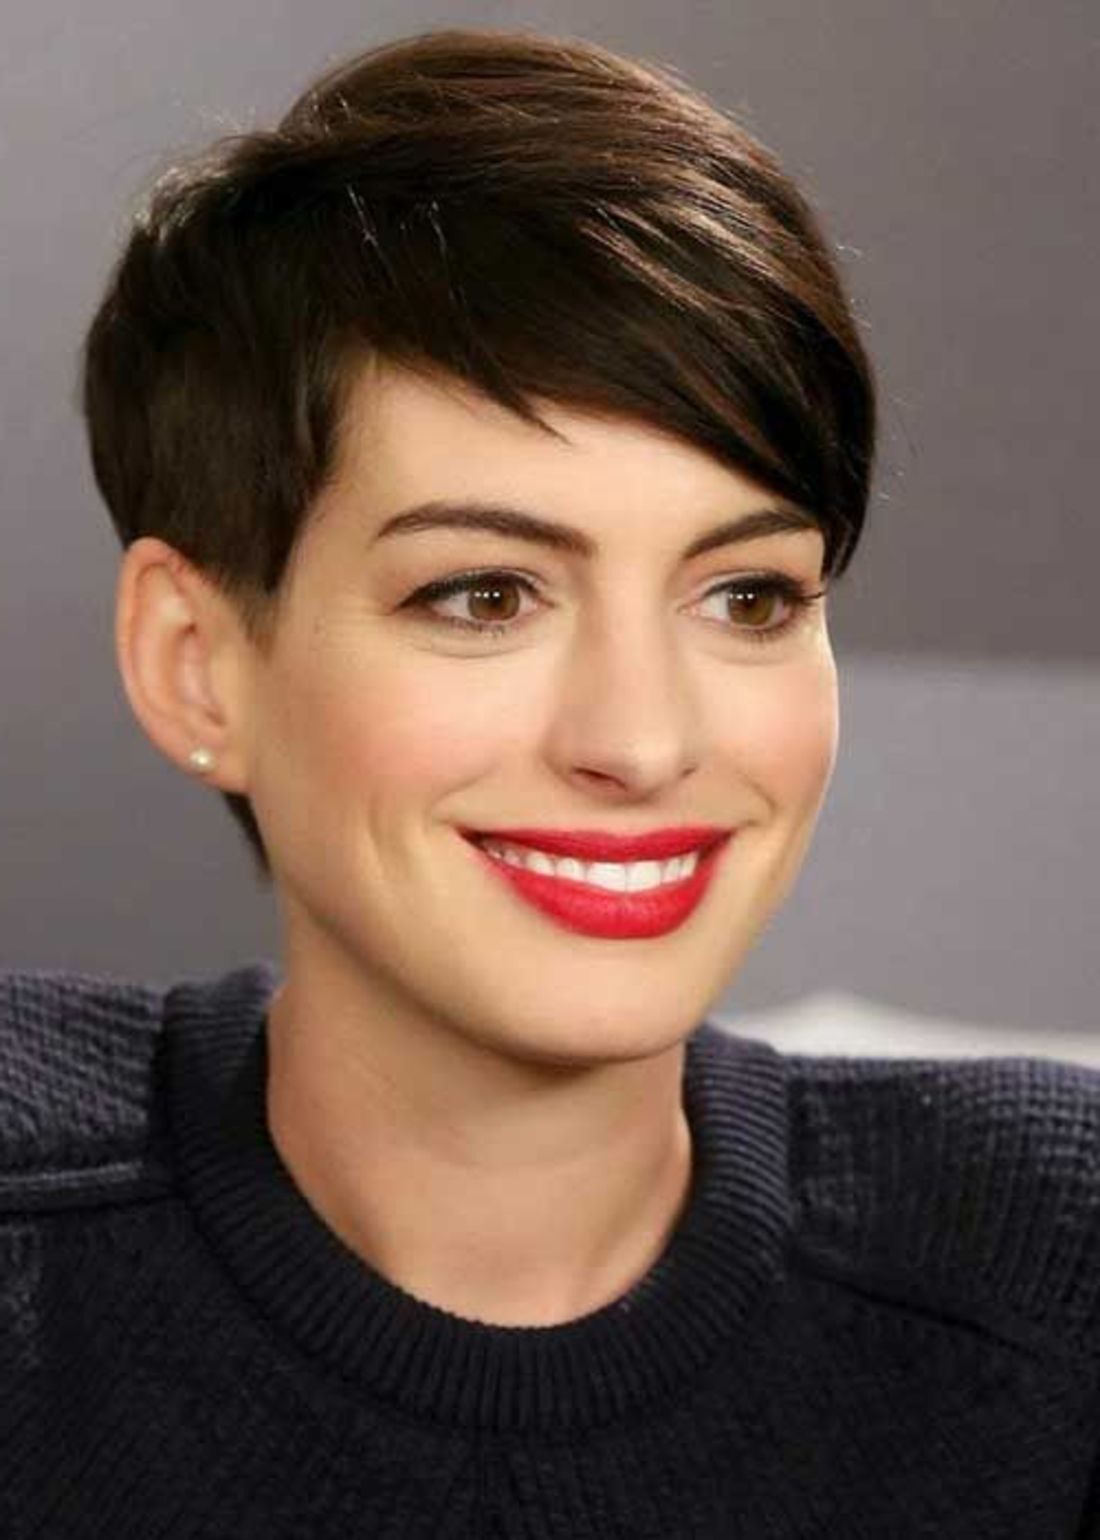 anne hathaway kurze haare und rote lippenstift undercut. Black Bedroom Furniture Sets. Home Design Ideas